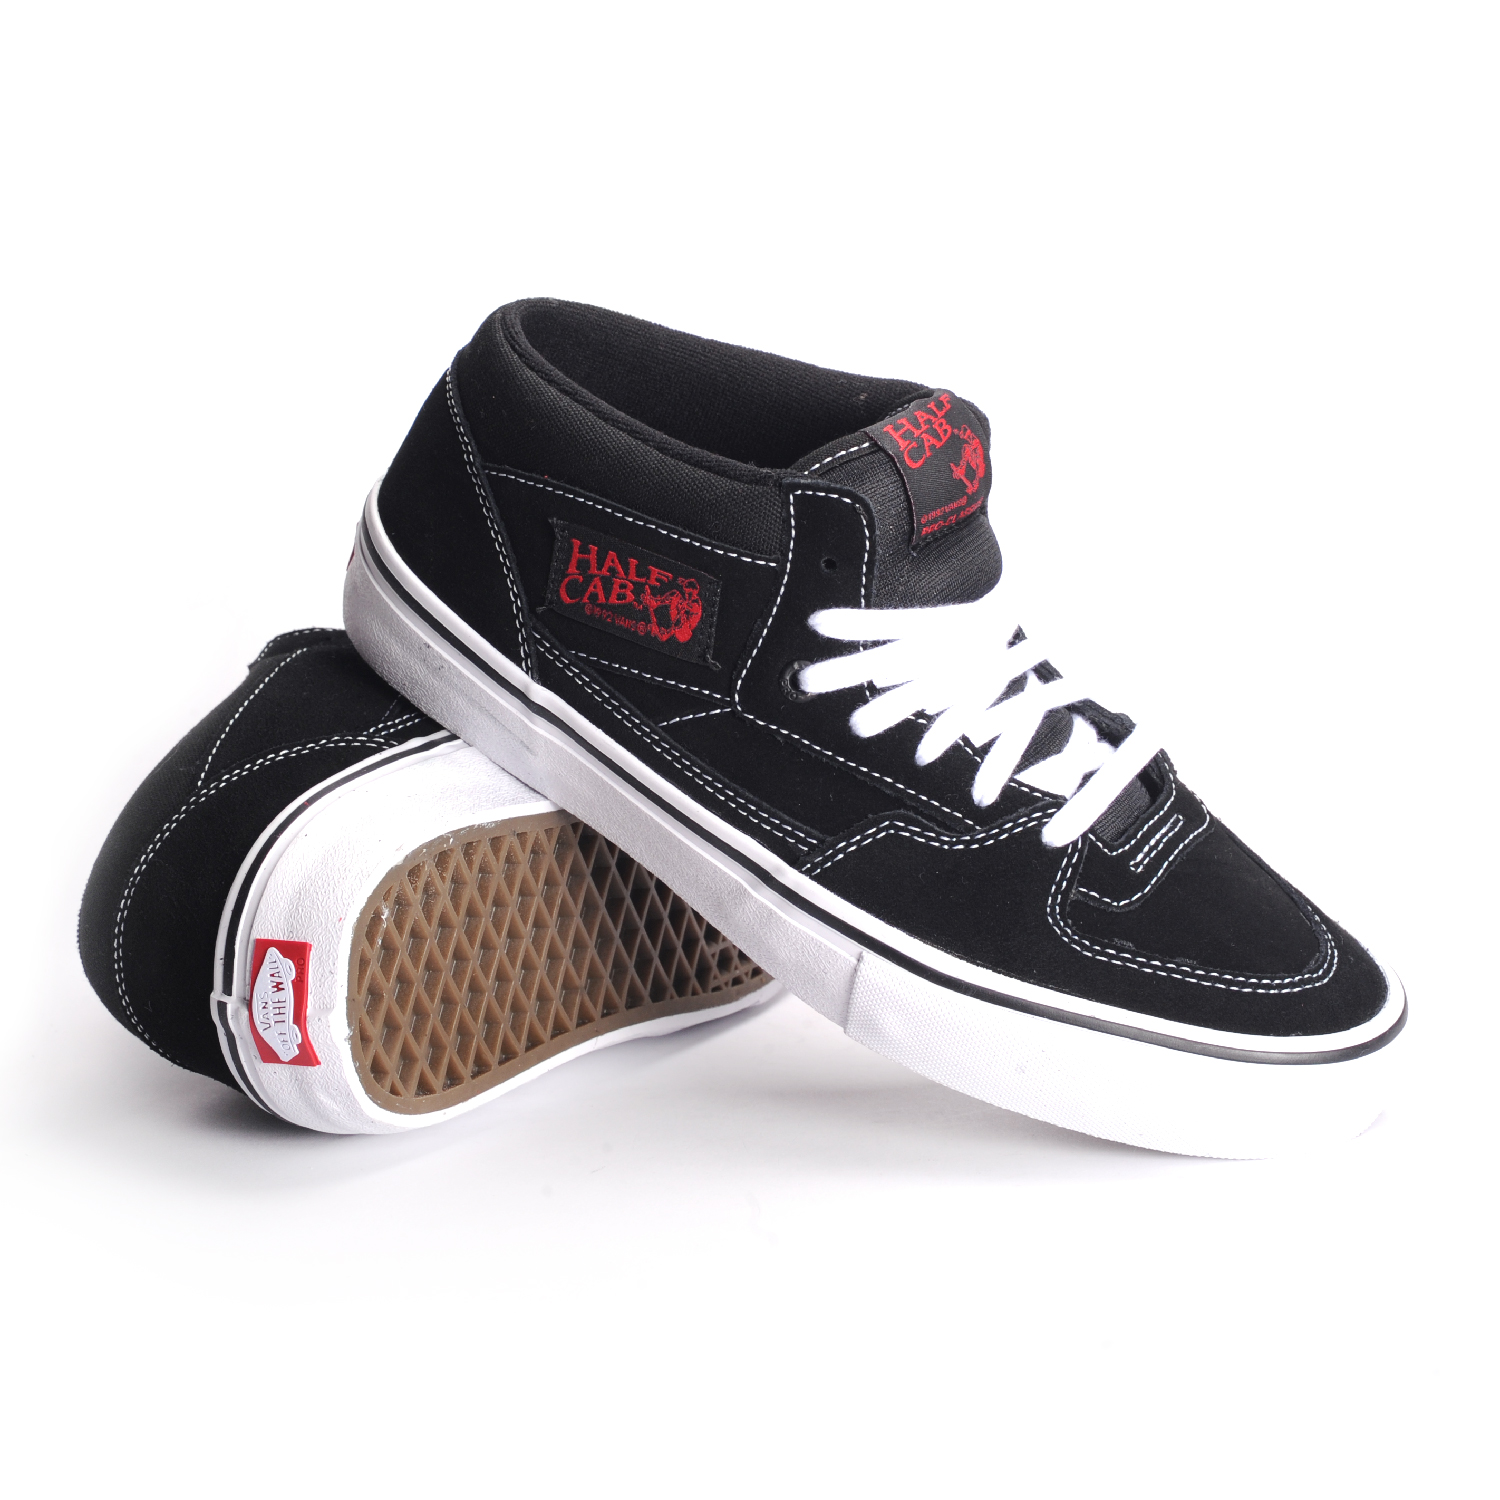 Vans Shoes Half Cab Black White Red USA SIZE Steve Caballero Skateboard Sneakers